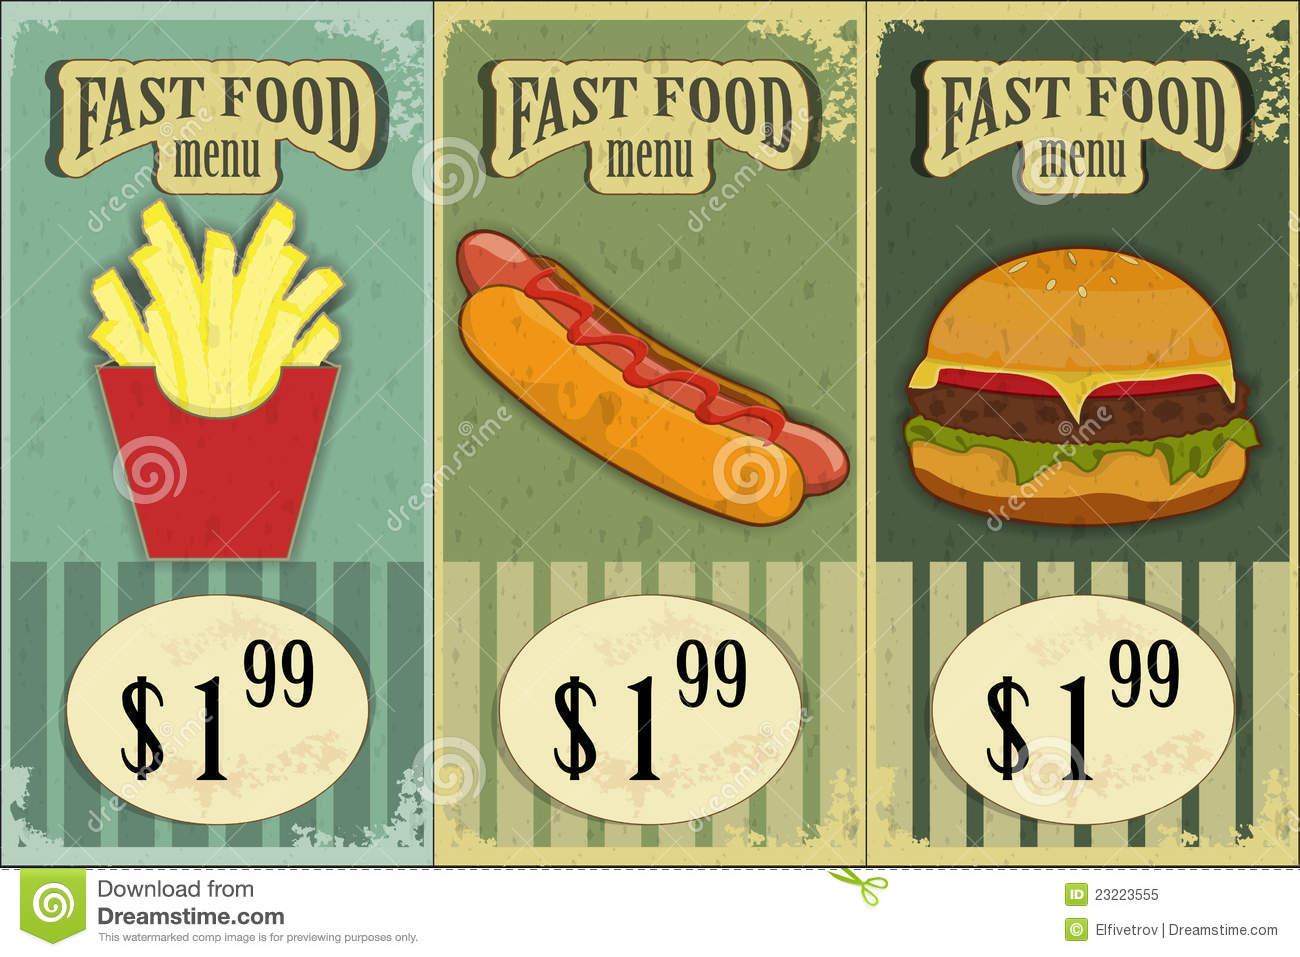 Vintage Fast Food Labels Royalty Free Stock Photo - Image: 23223555